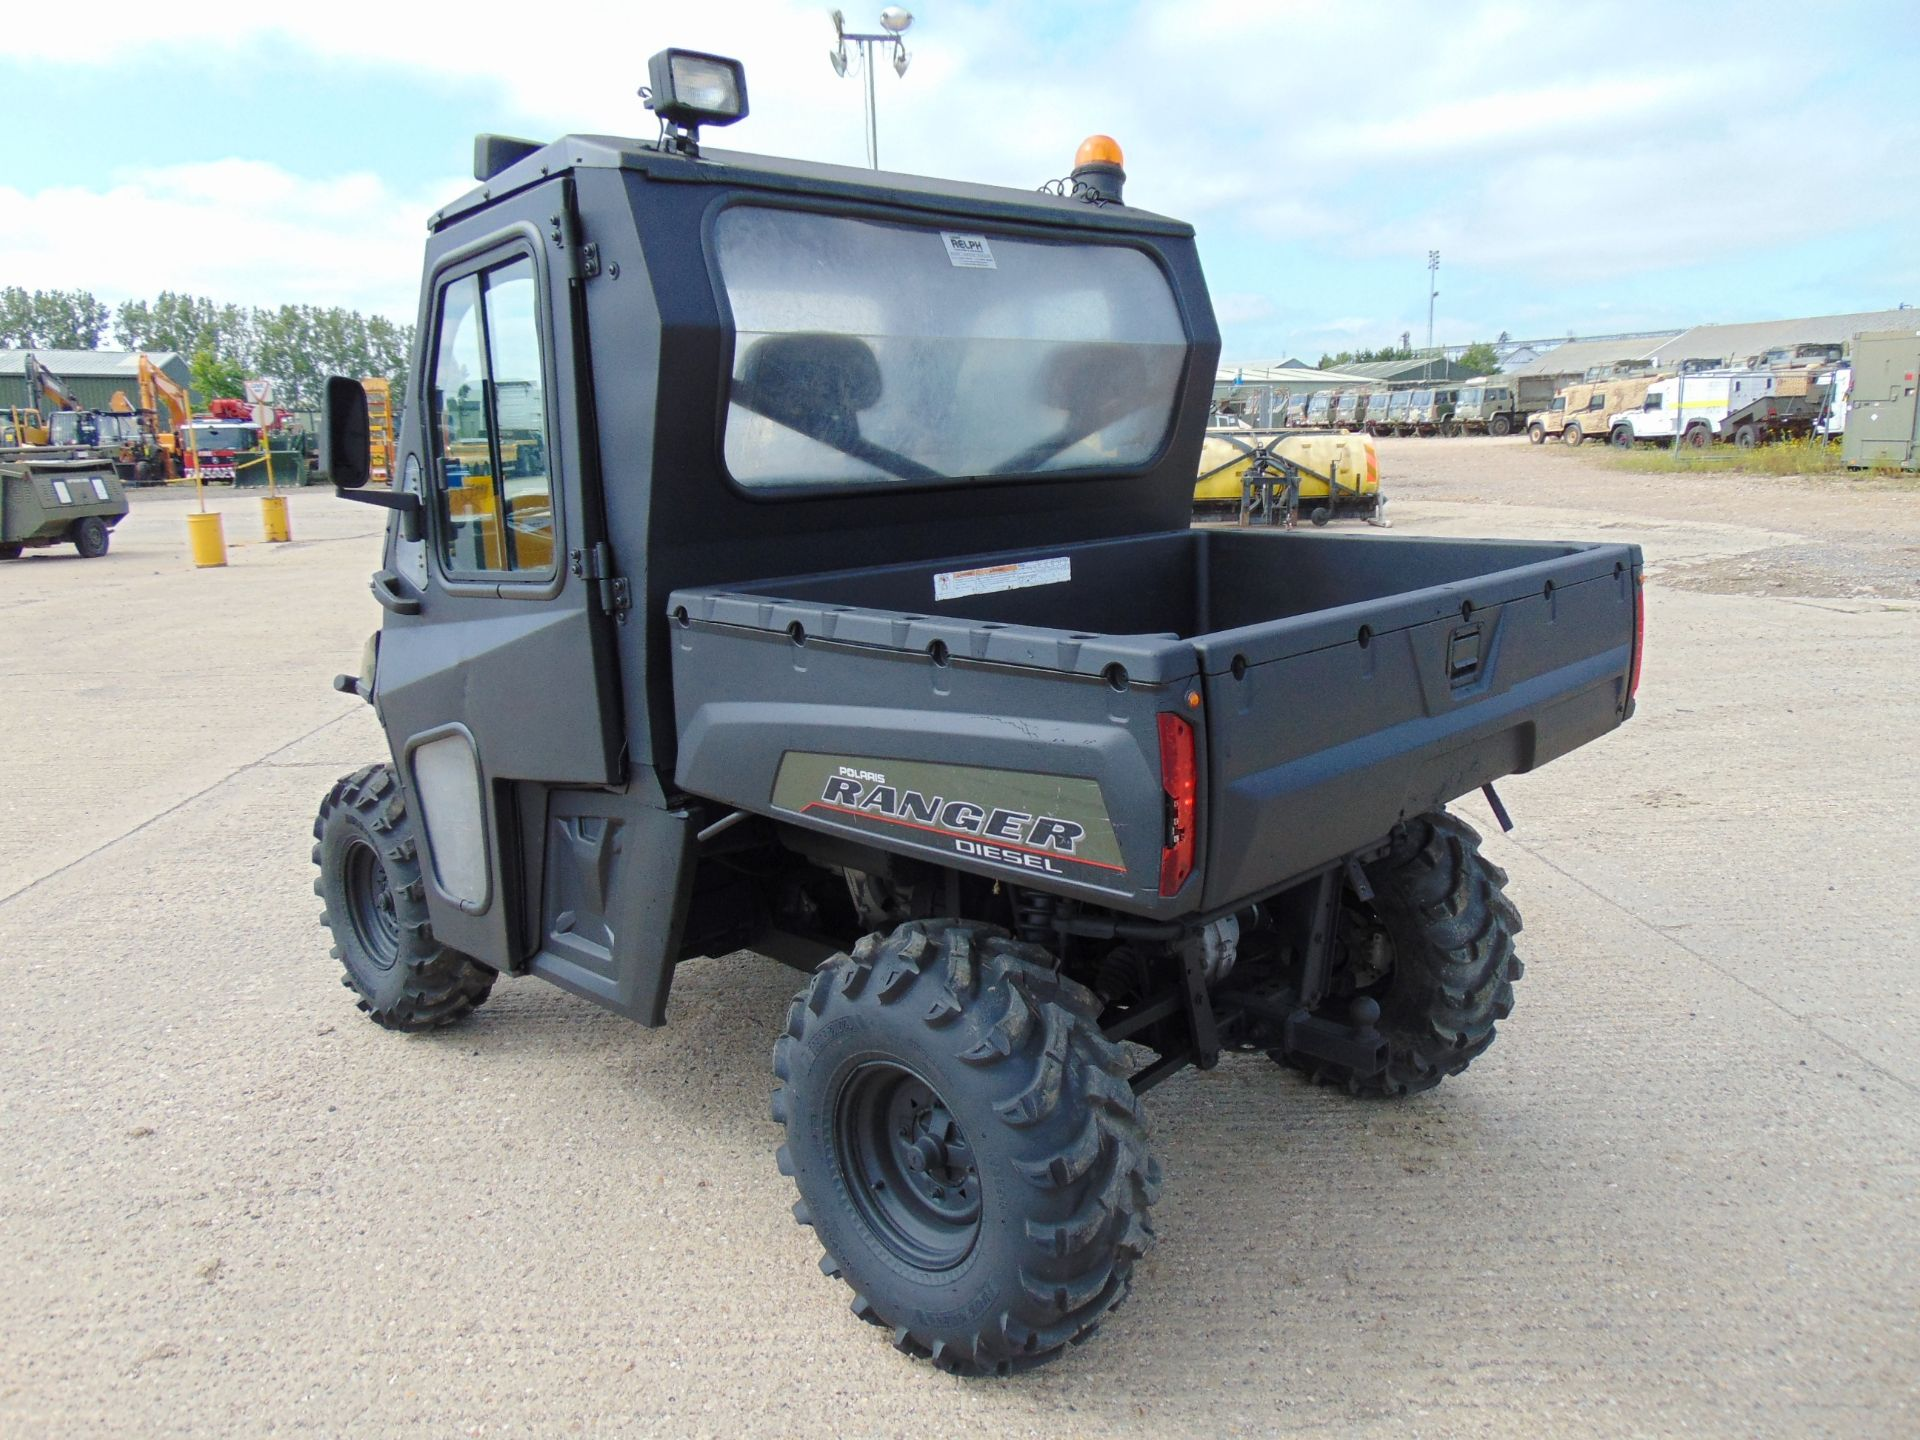 Lot 10 - 2012 Polaris Ranger 4WD ATV